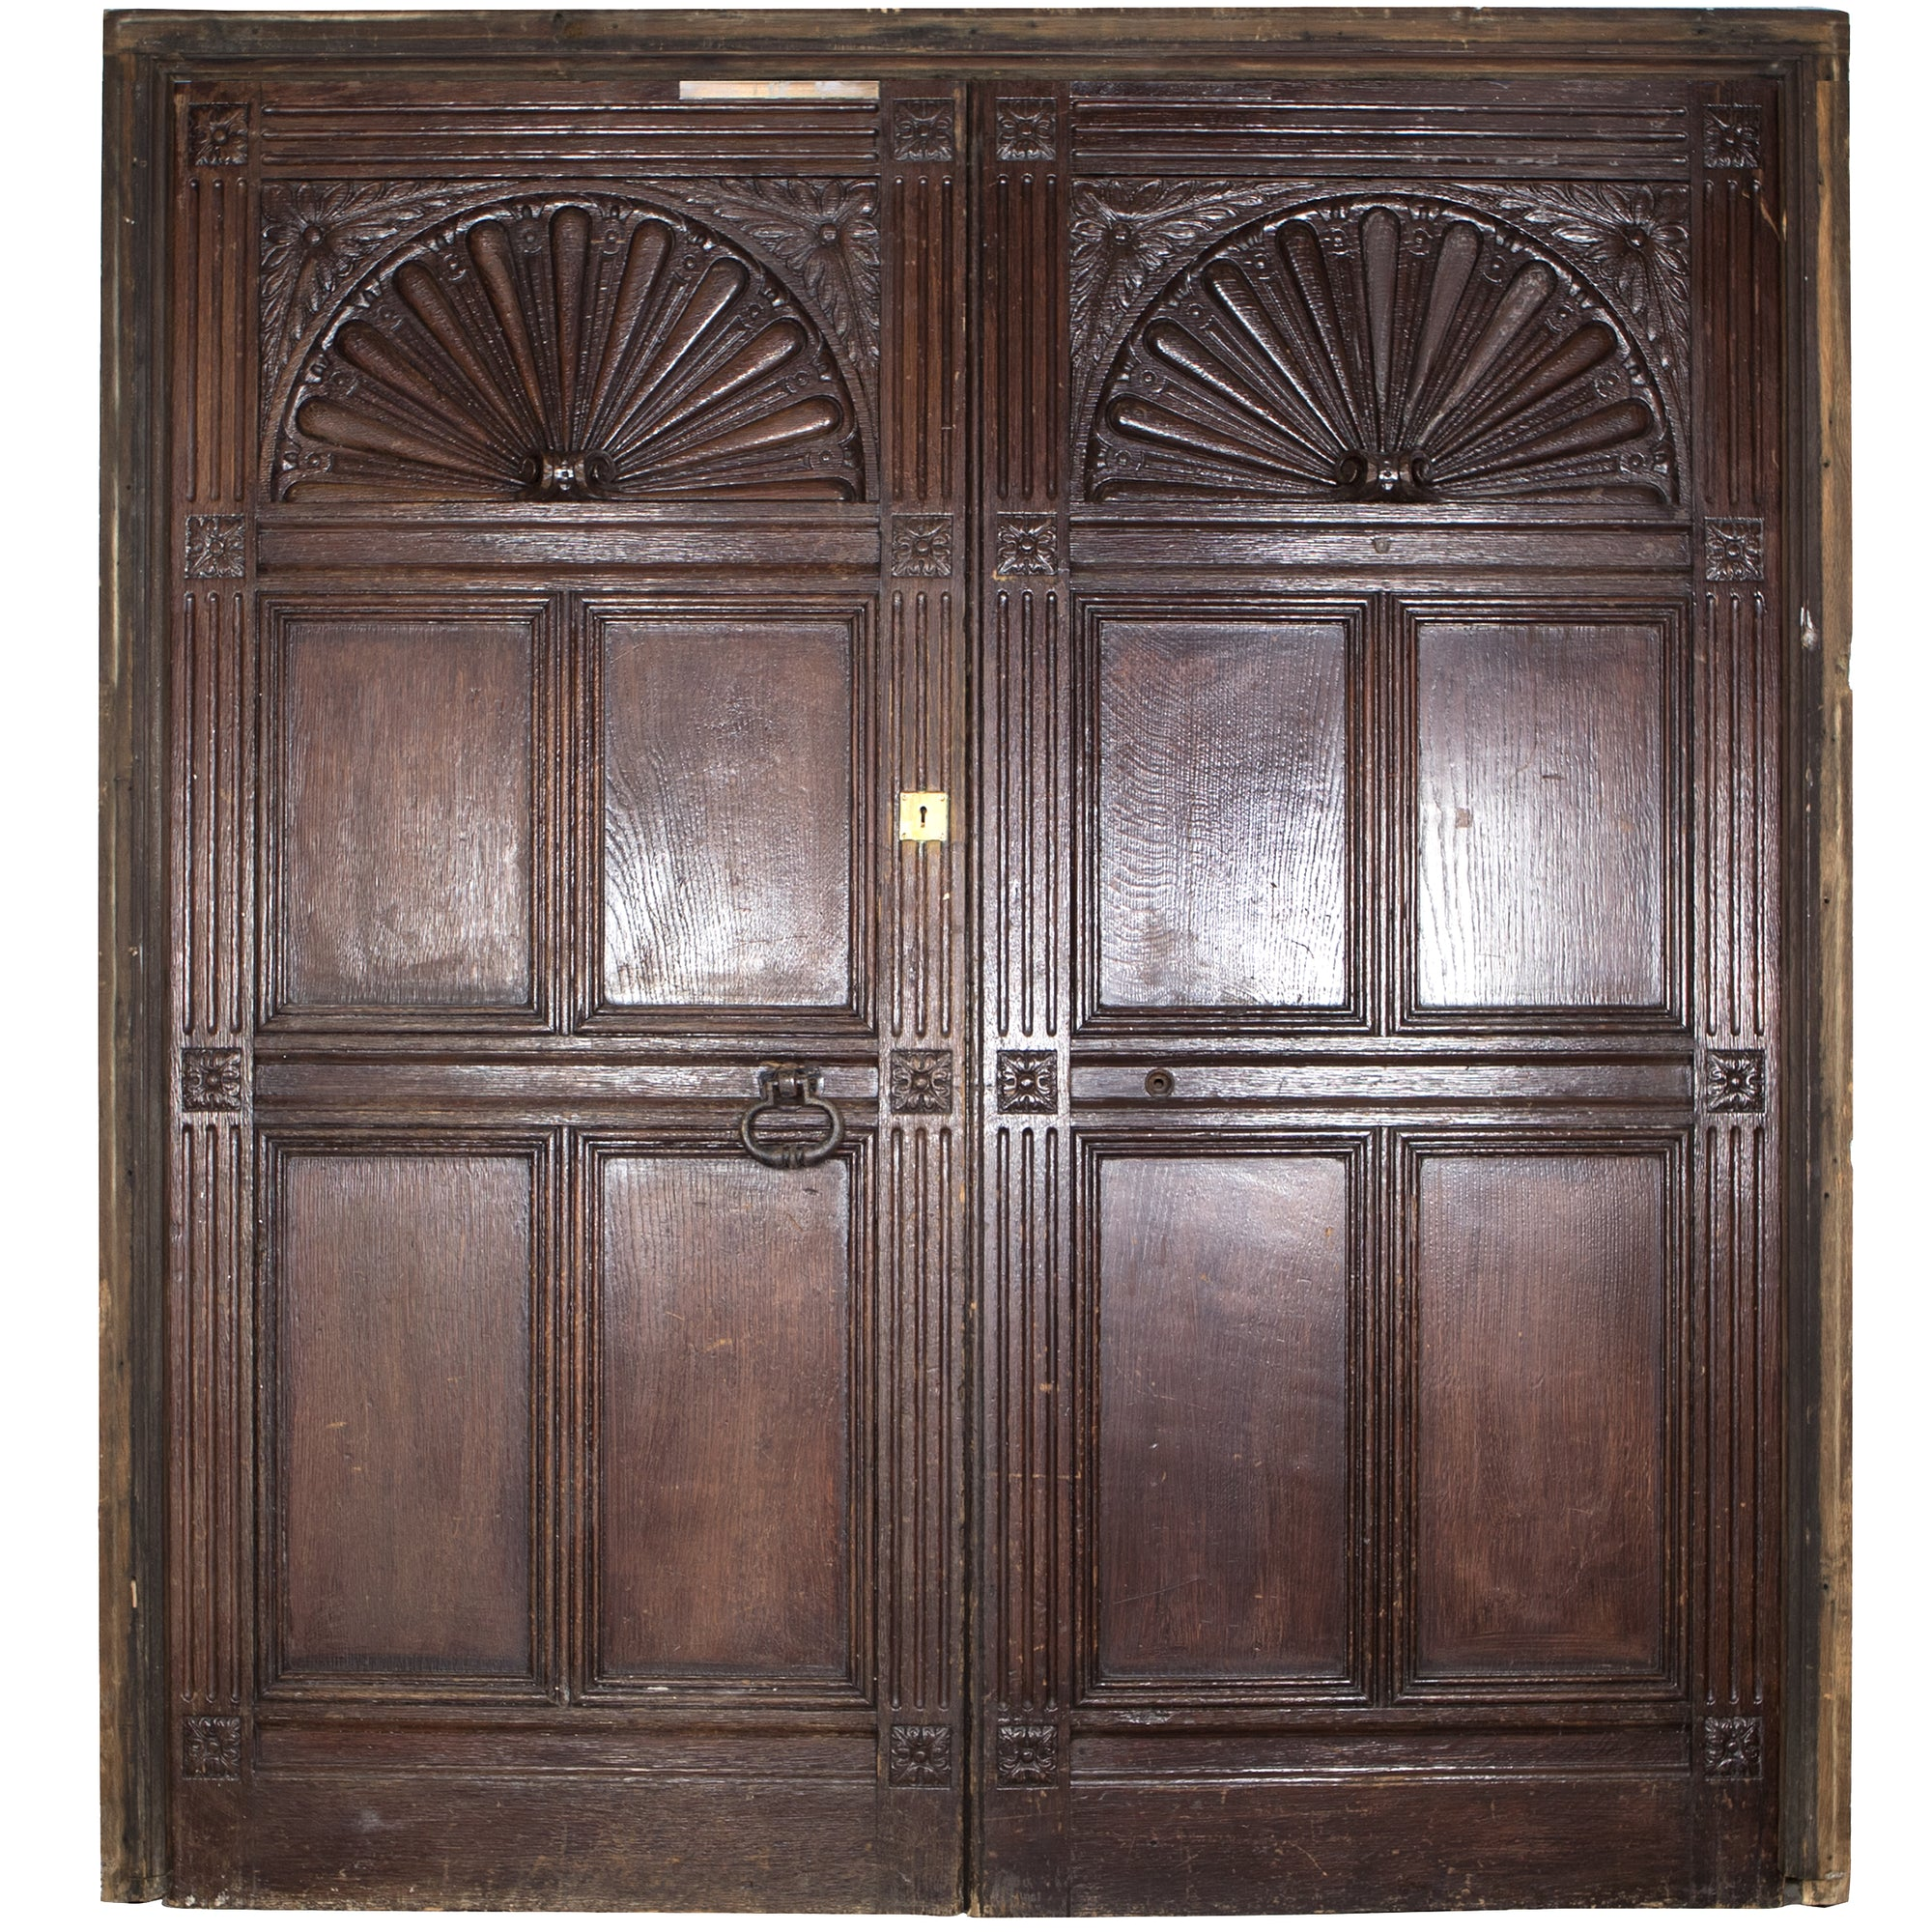 Reclaimed Carved Wooden Tudor Style Double Doors with Frame - architectural-forum